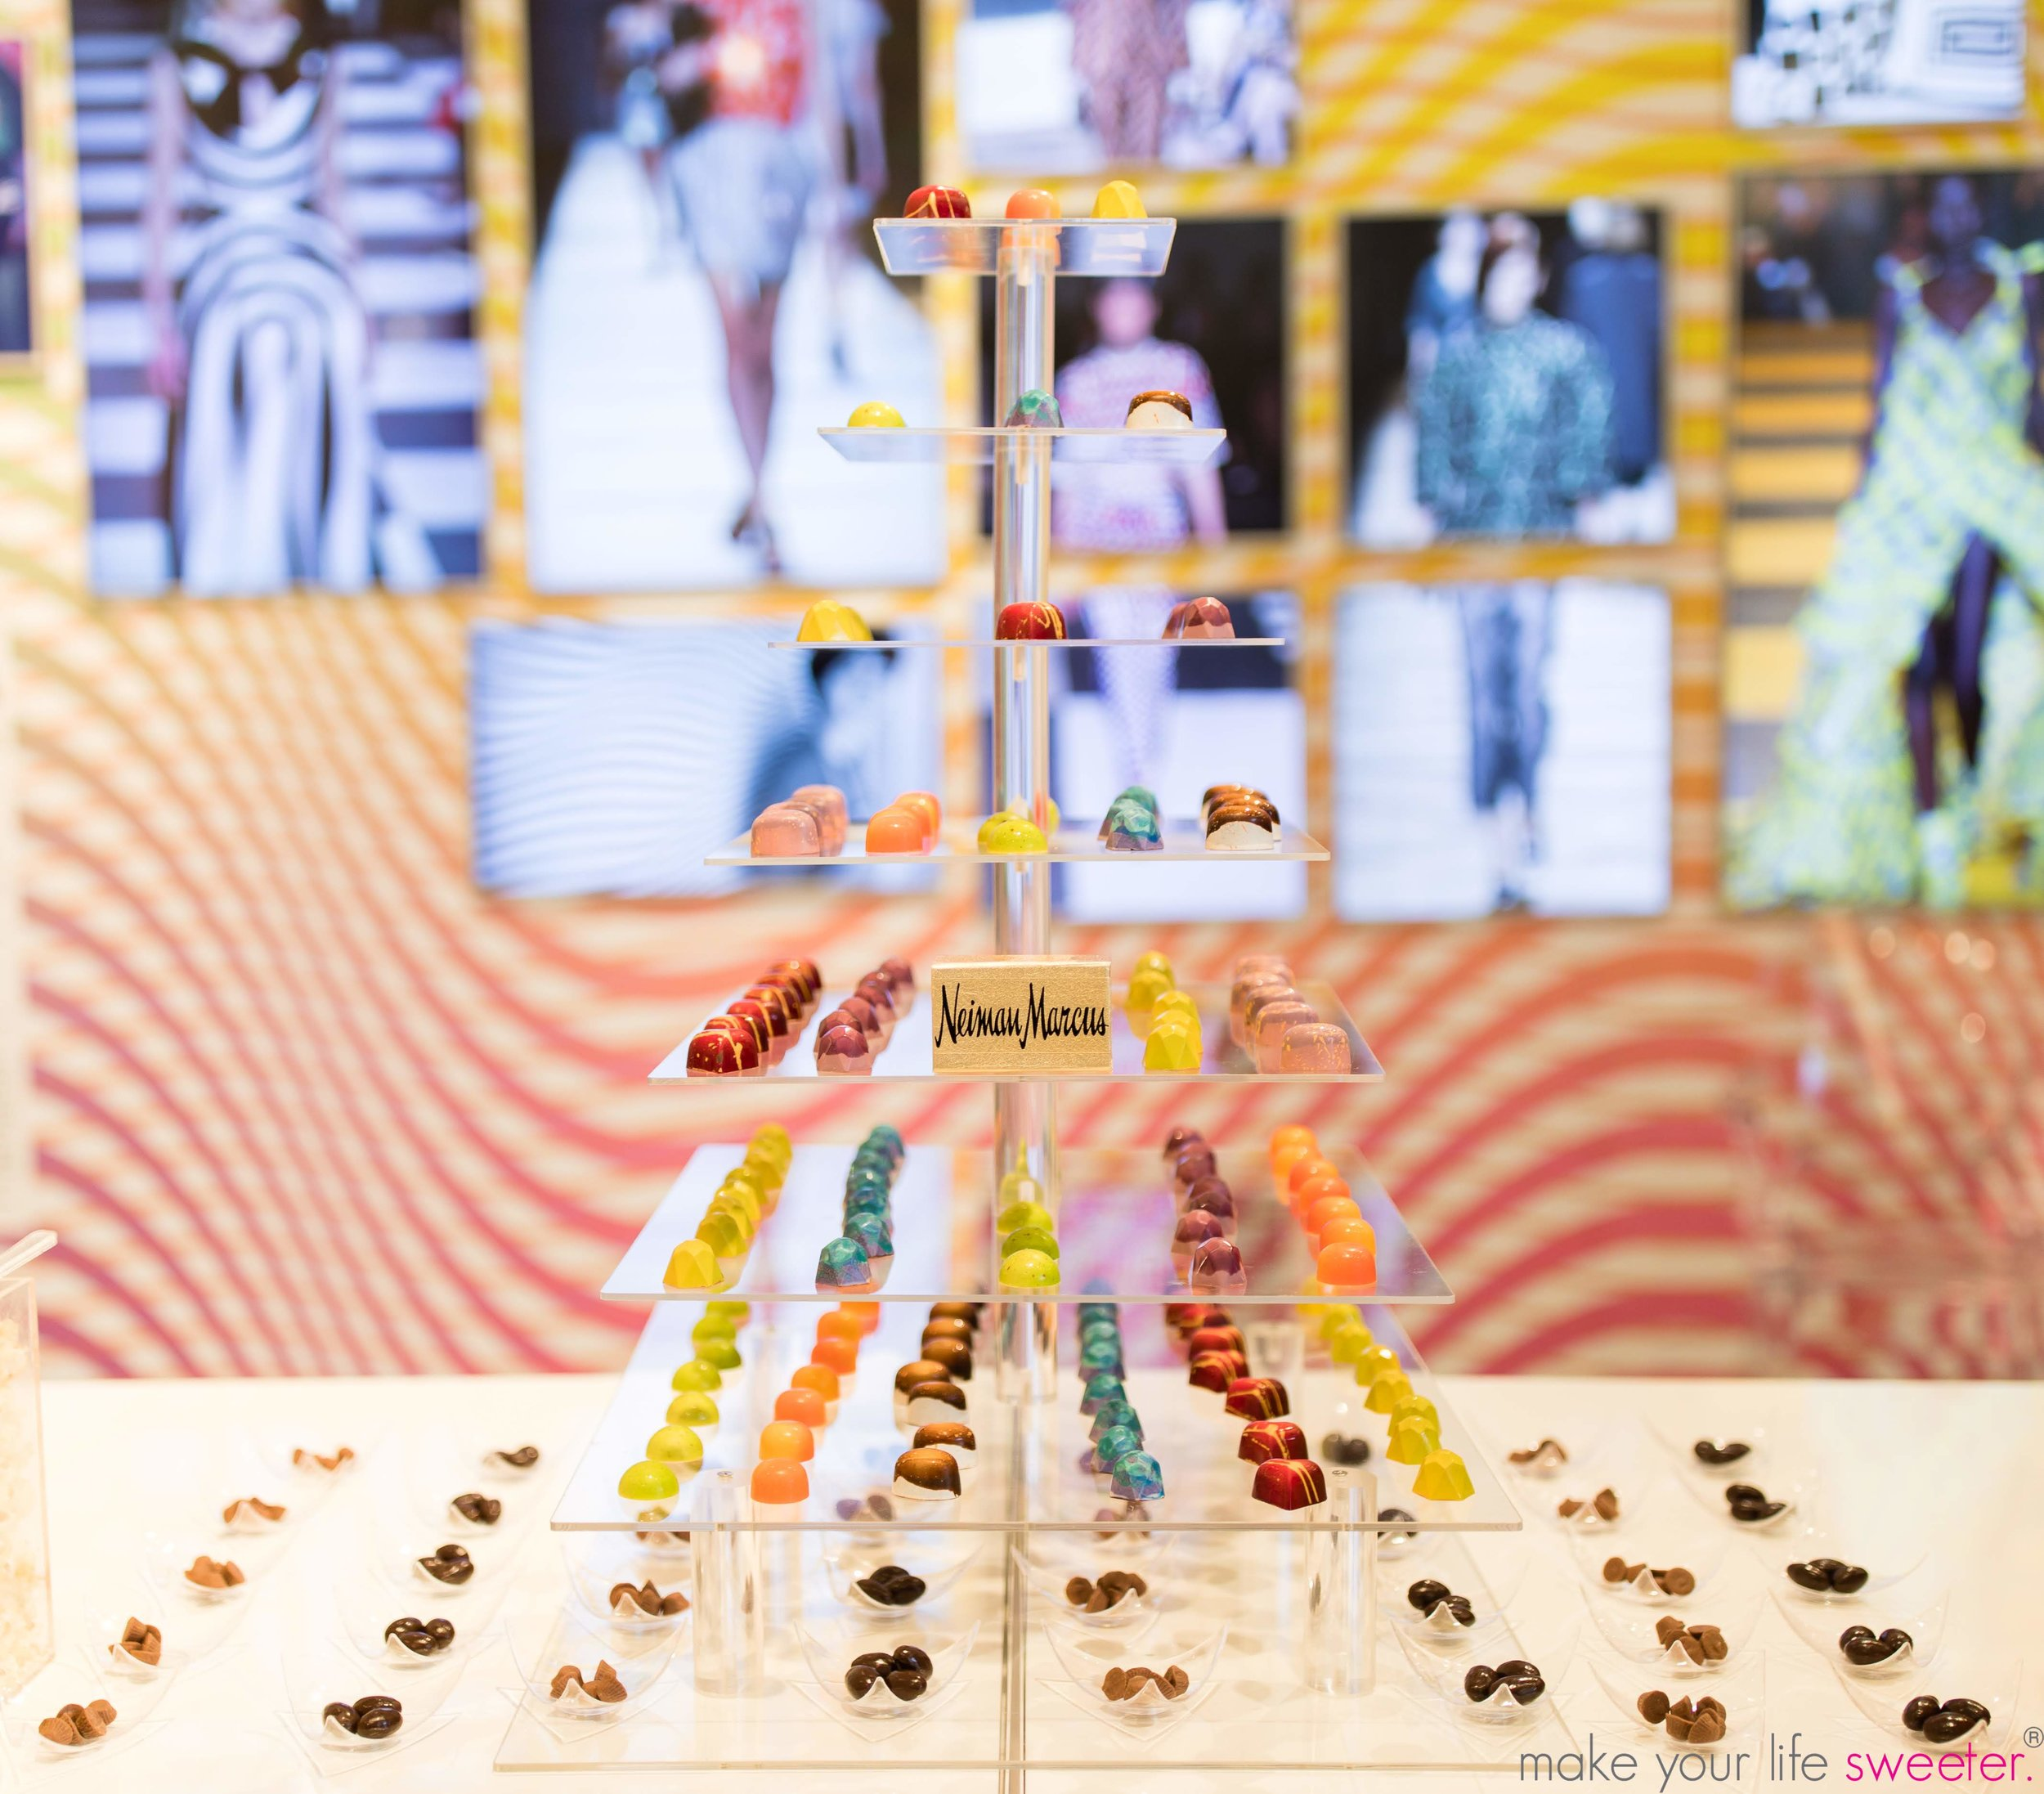 Make Your Life Sweeter Events - Neiman Marcus Hudson Yards Pride Event - Artisanal Truffle Bar